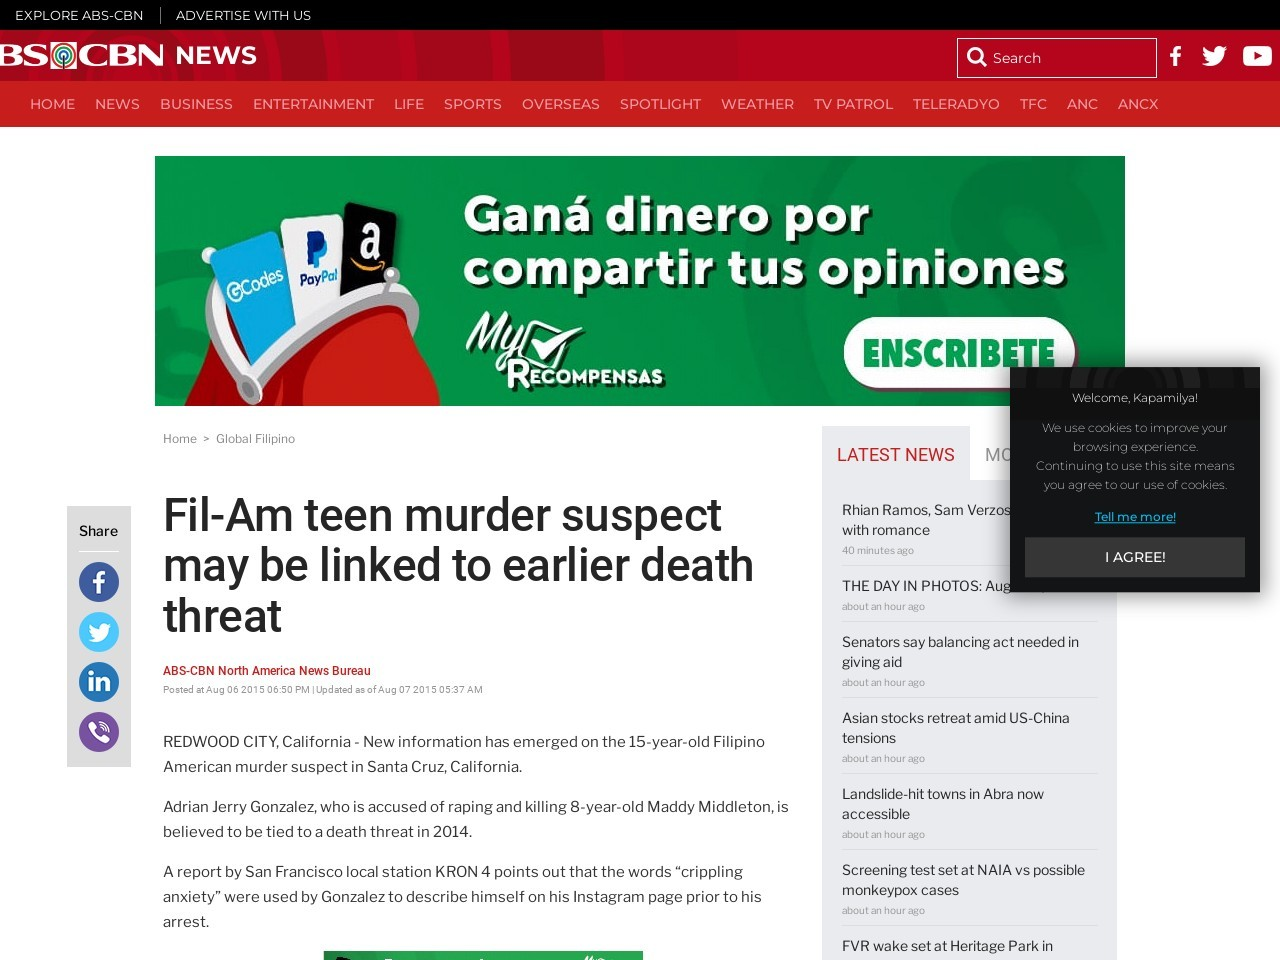 Fil-Am teen murder suspect may be linked to earlier death threat